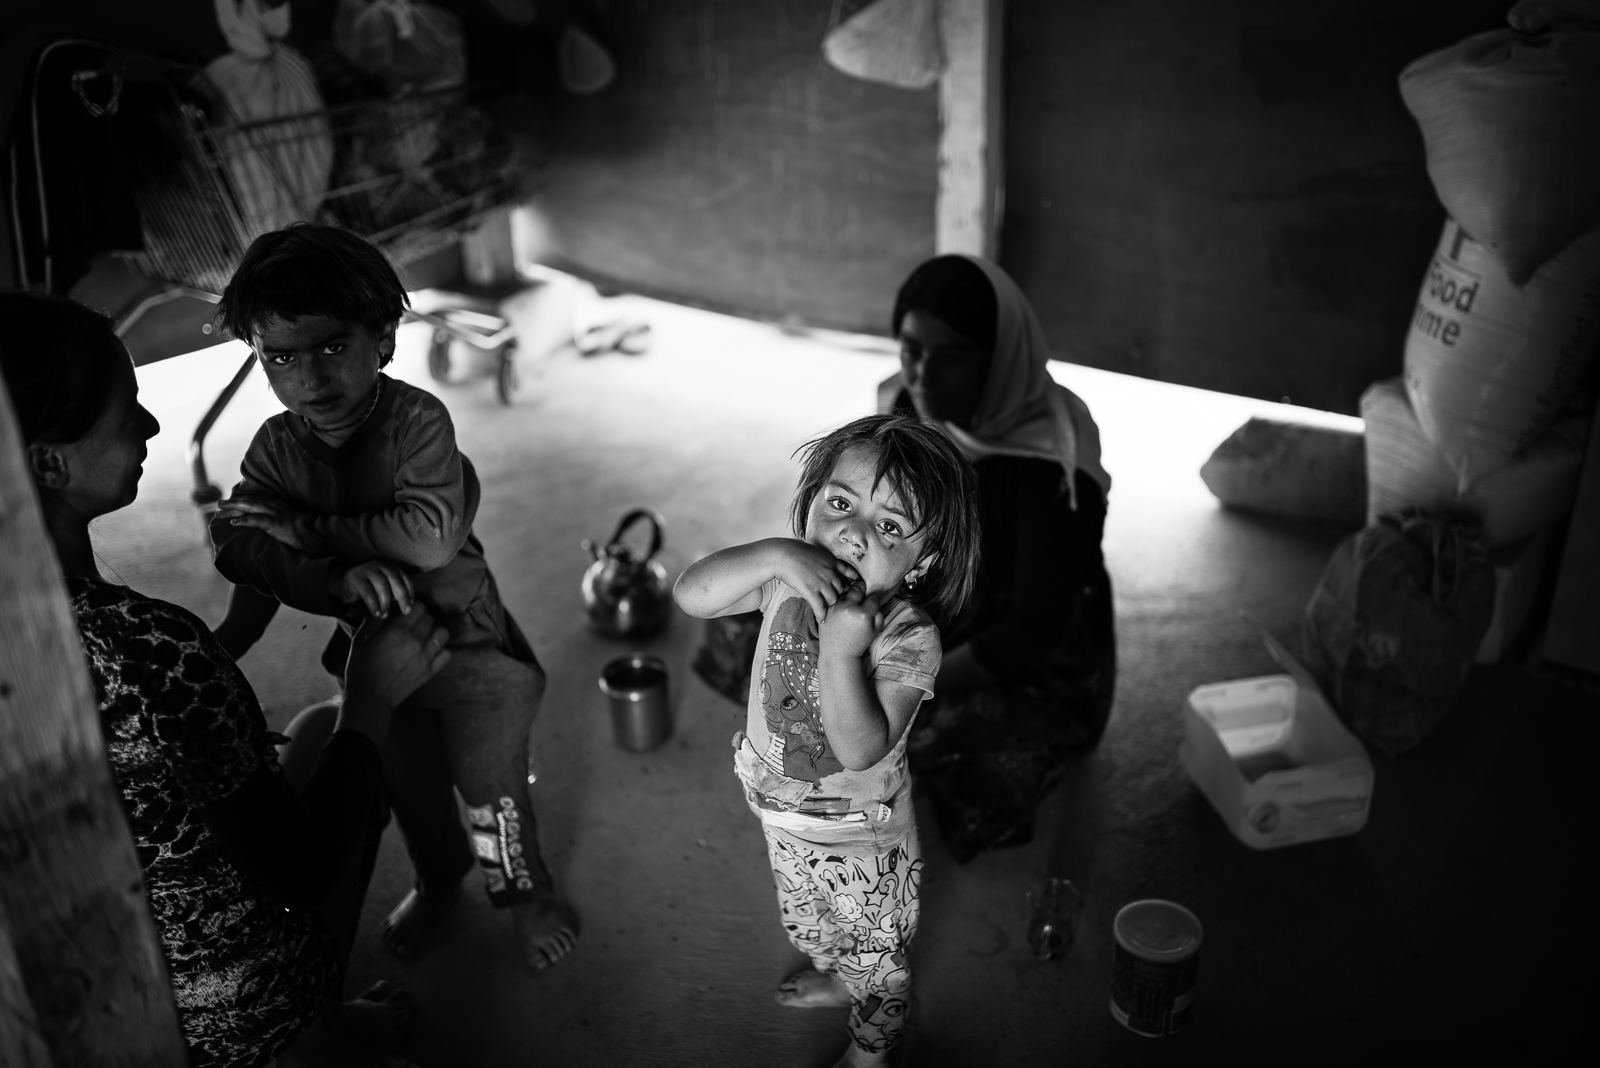 Inside a small house in a mini-camp (with only 2/3 families) in Erbil